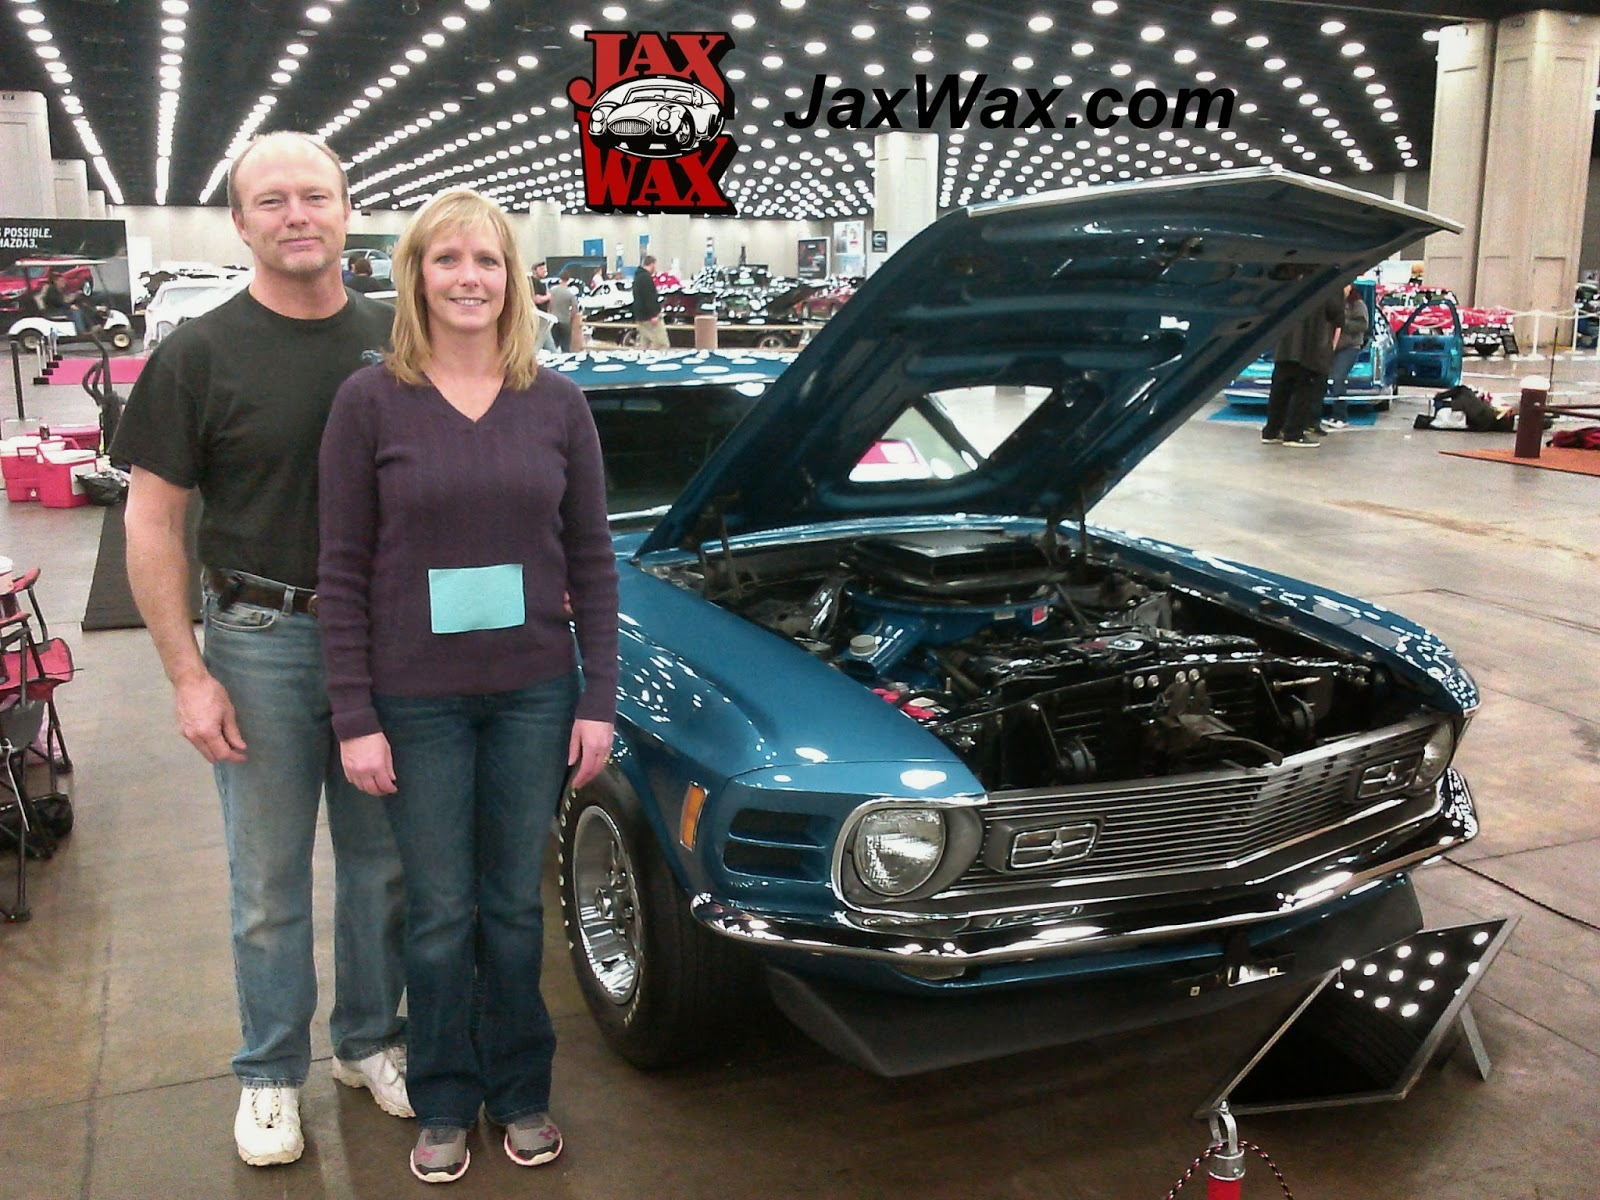 1970 Ford Mustang Mach1 Carl Casper Auto Show Jax Wax Customer